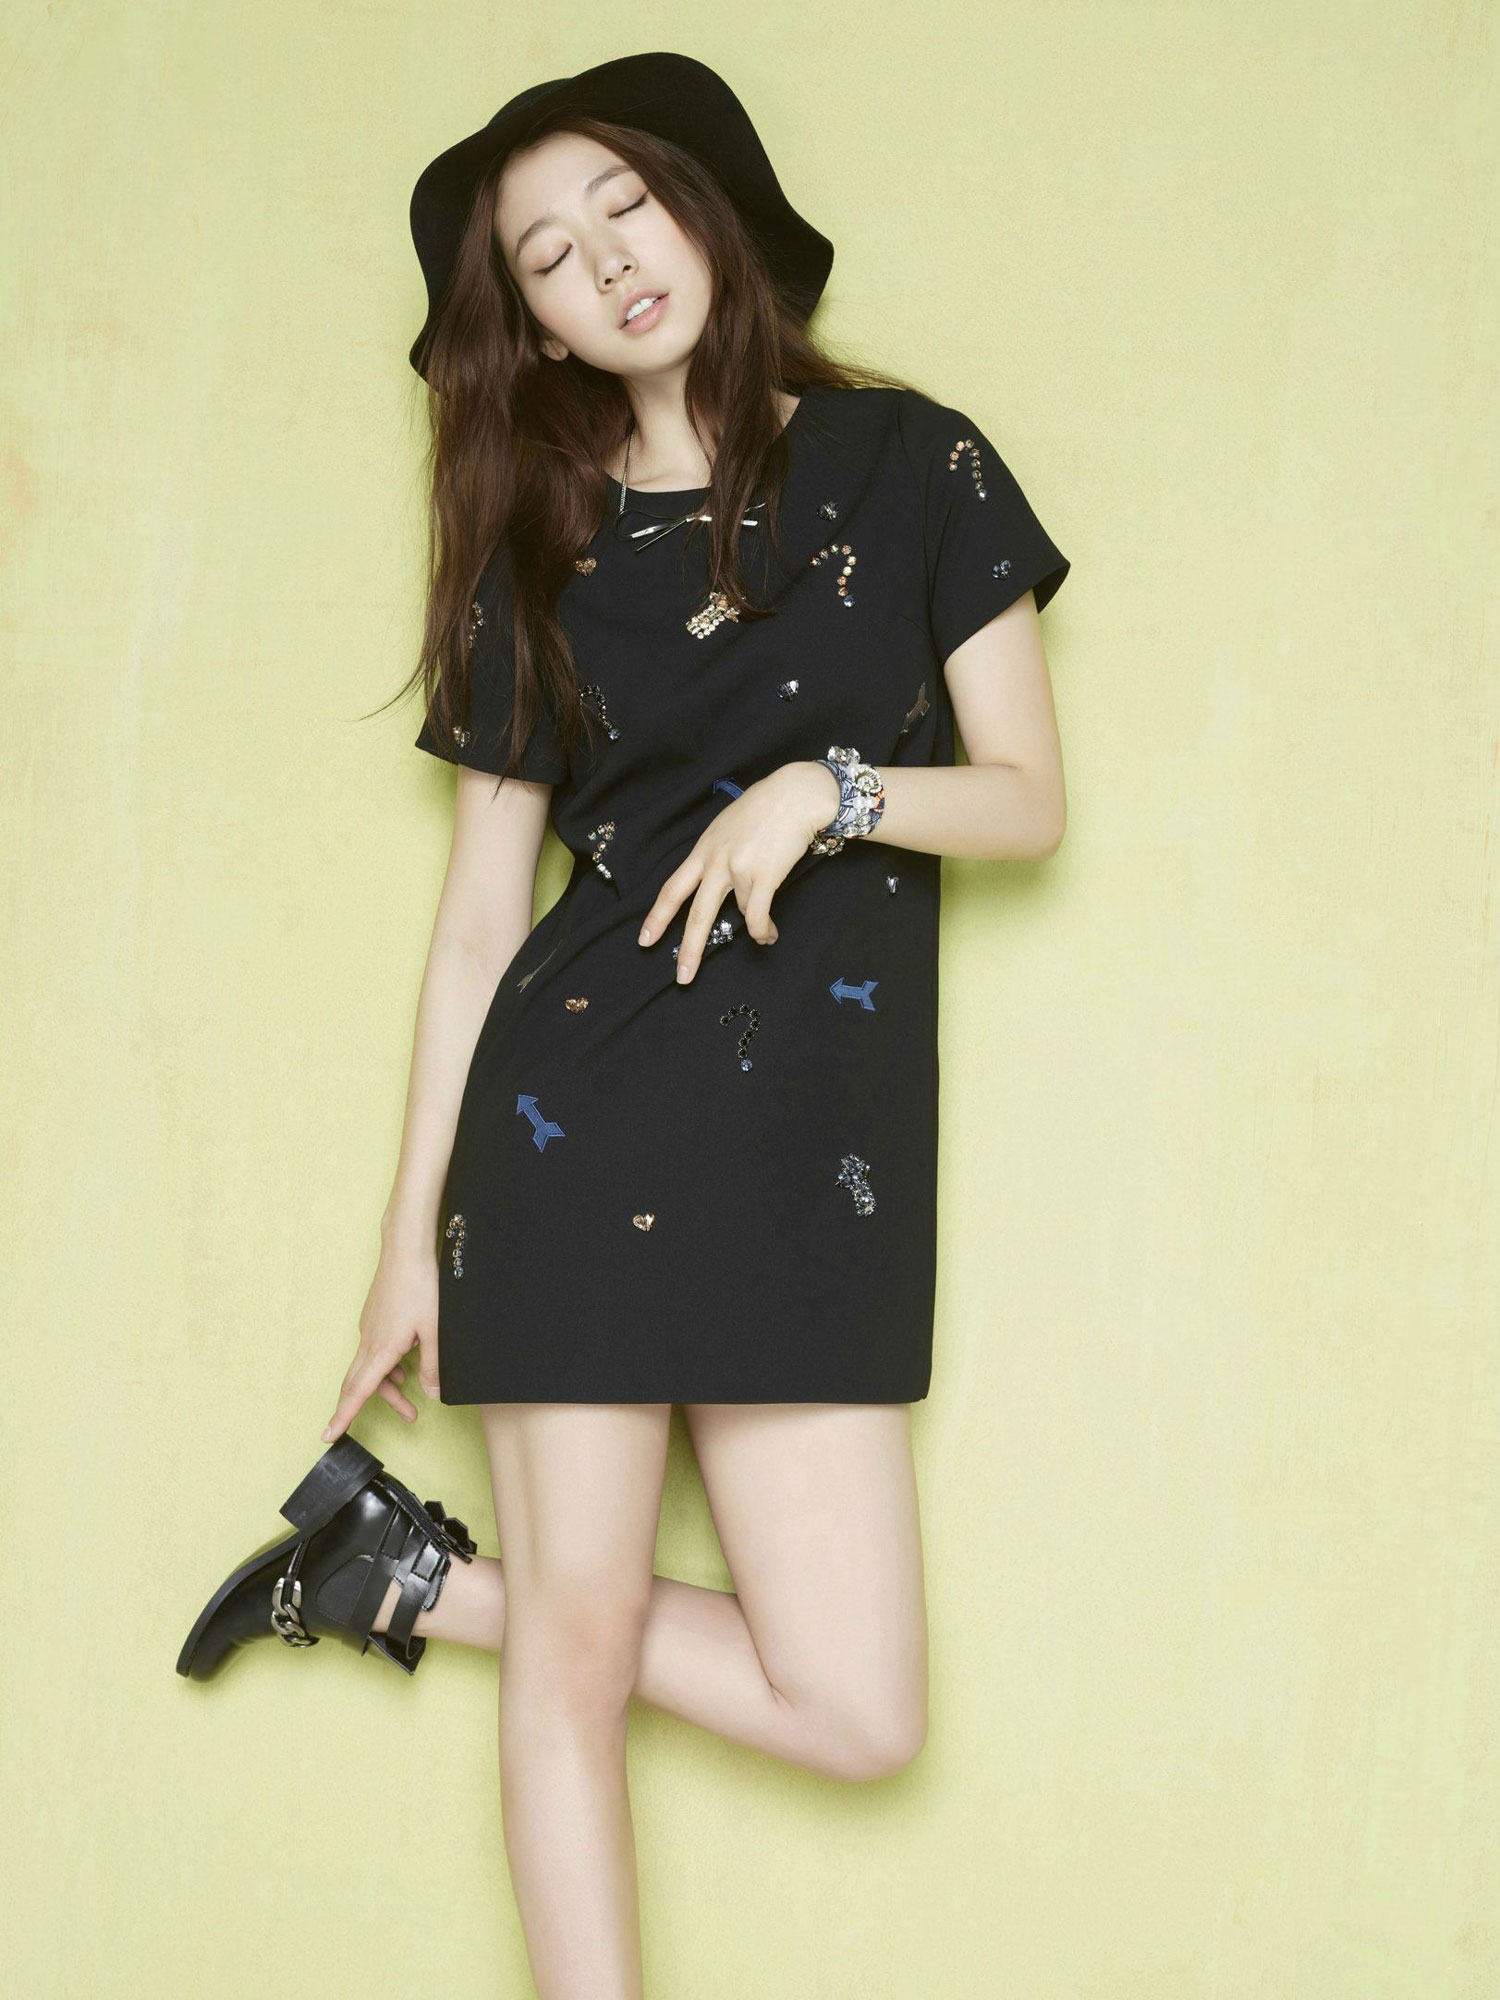 Park Shin Hye Viki clothing advertisement